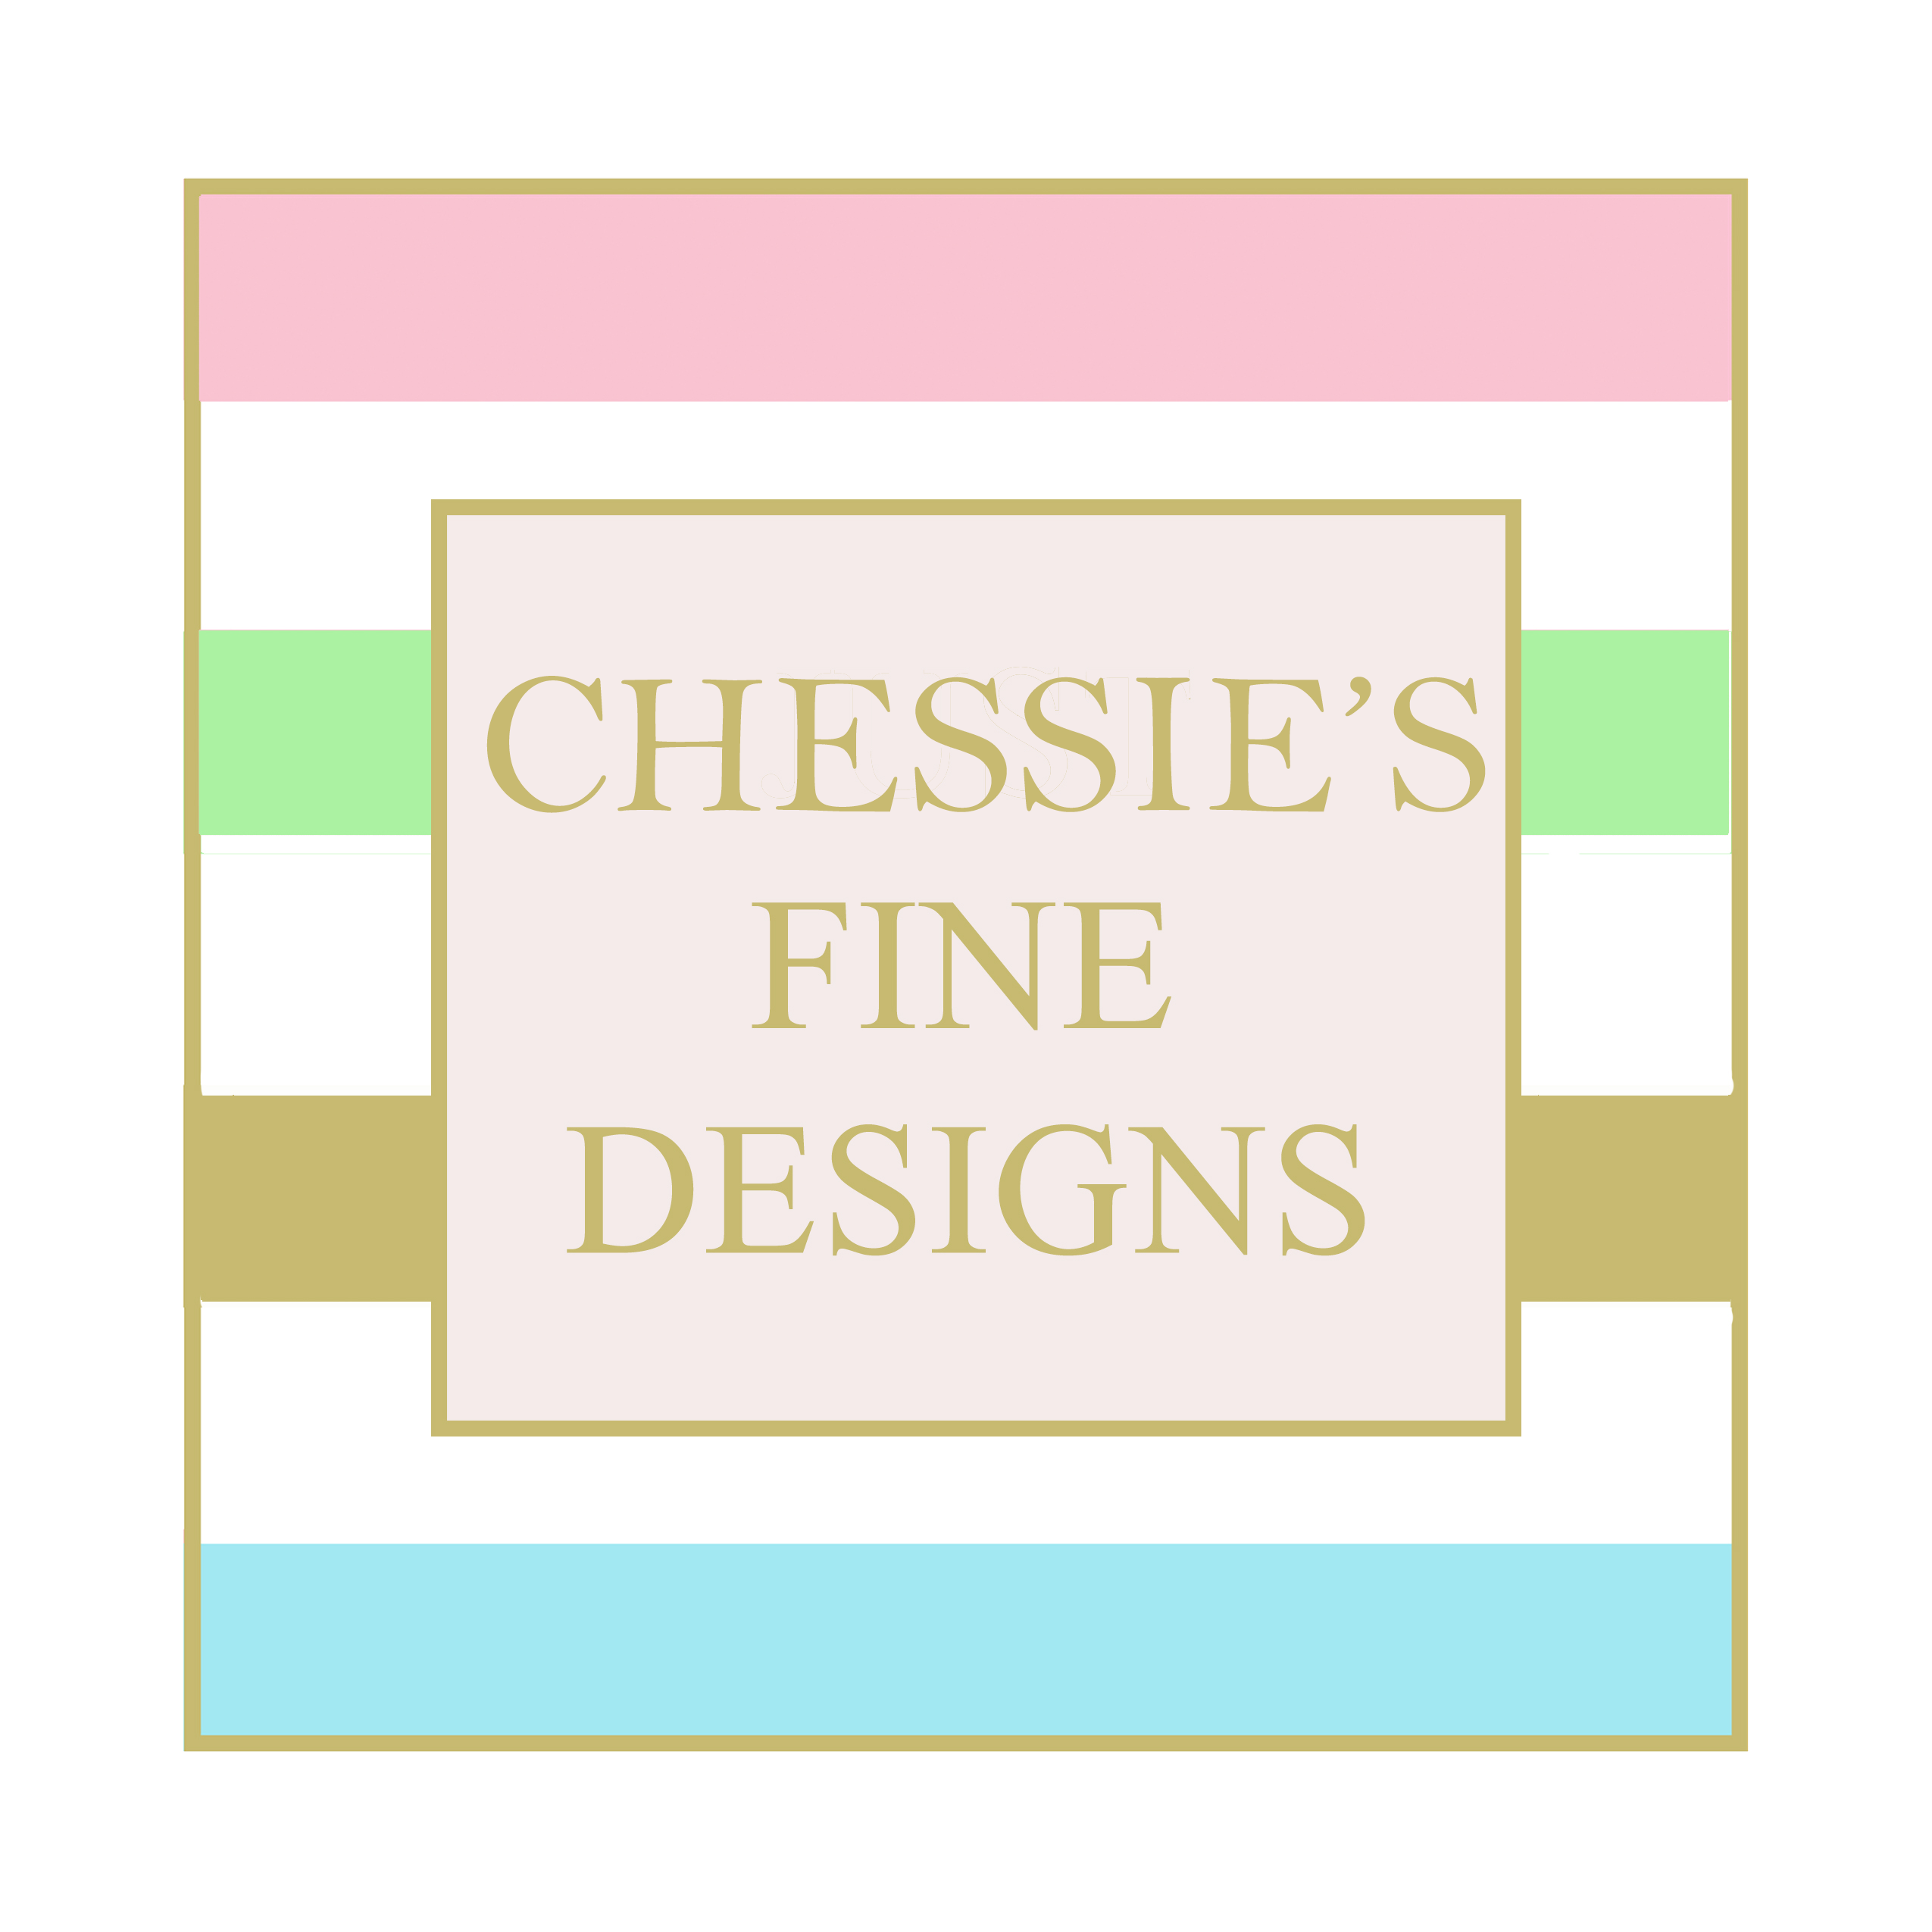 Chessie's Fine Designs